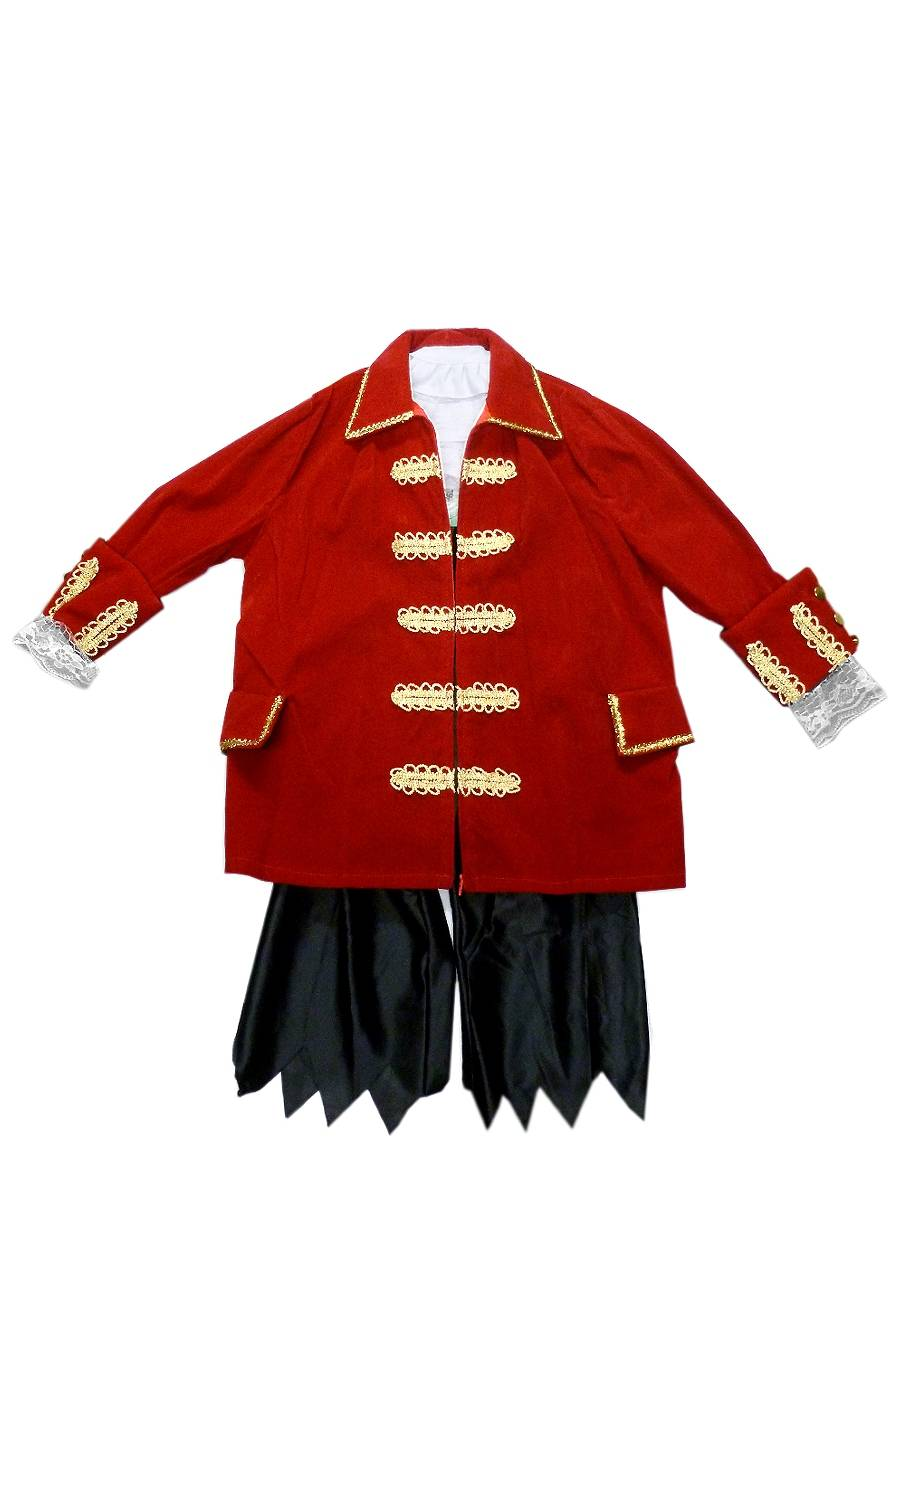 Costume-Pirate-Captain-Red-2